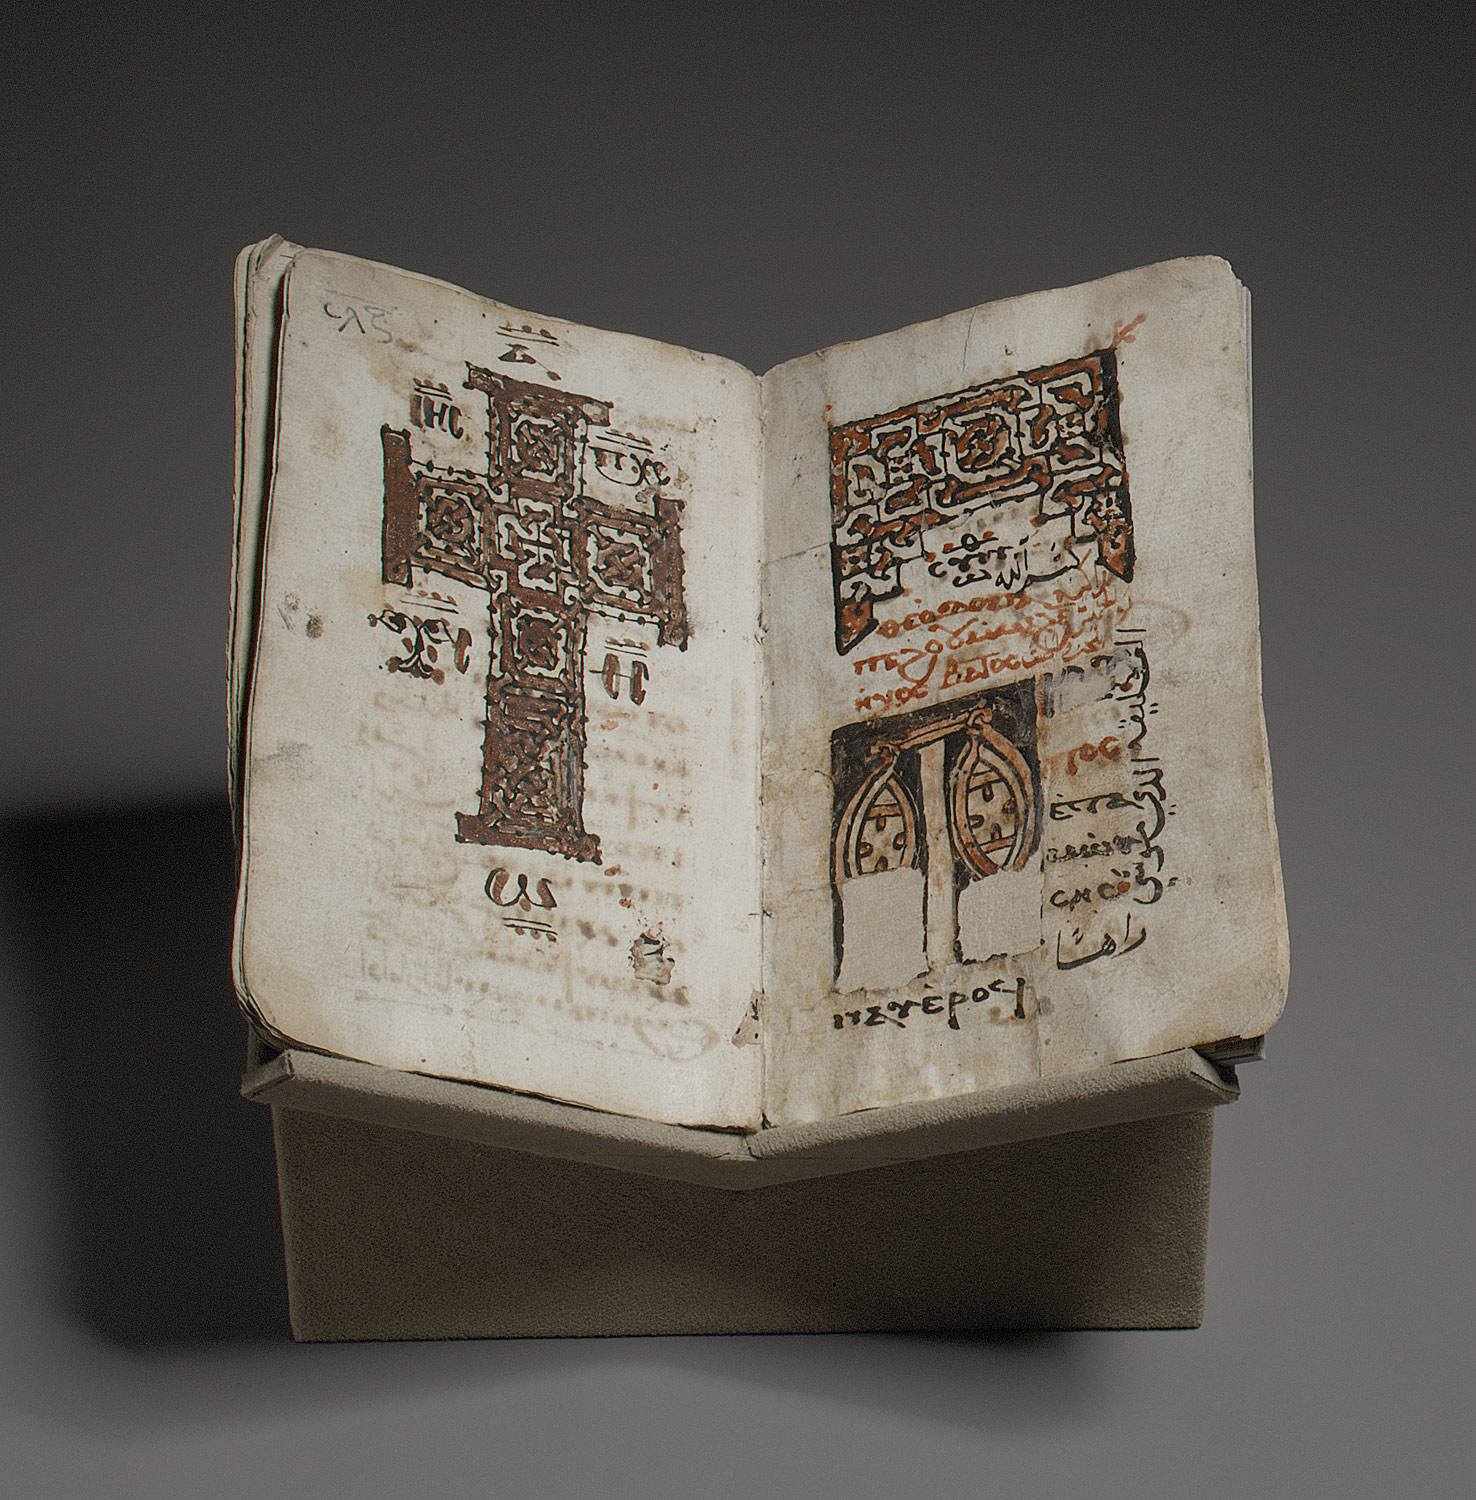 Coptic Liturgical Codex